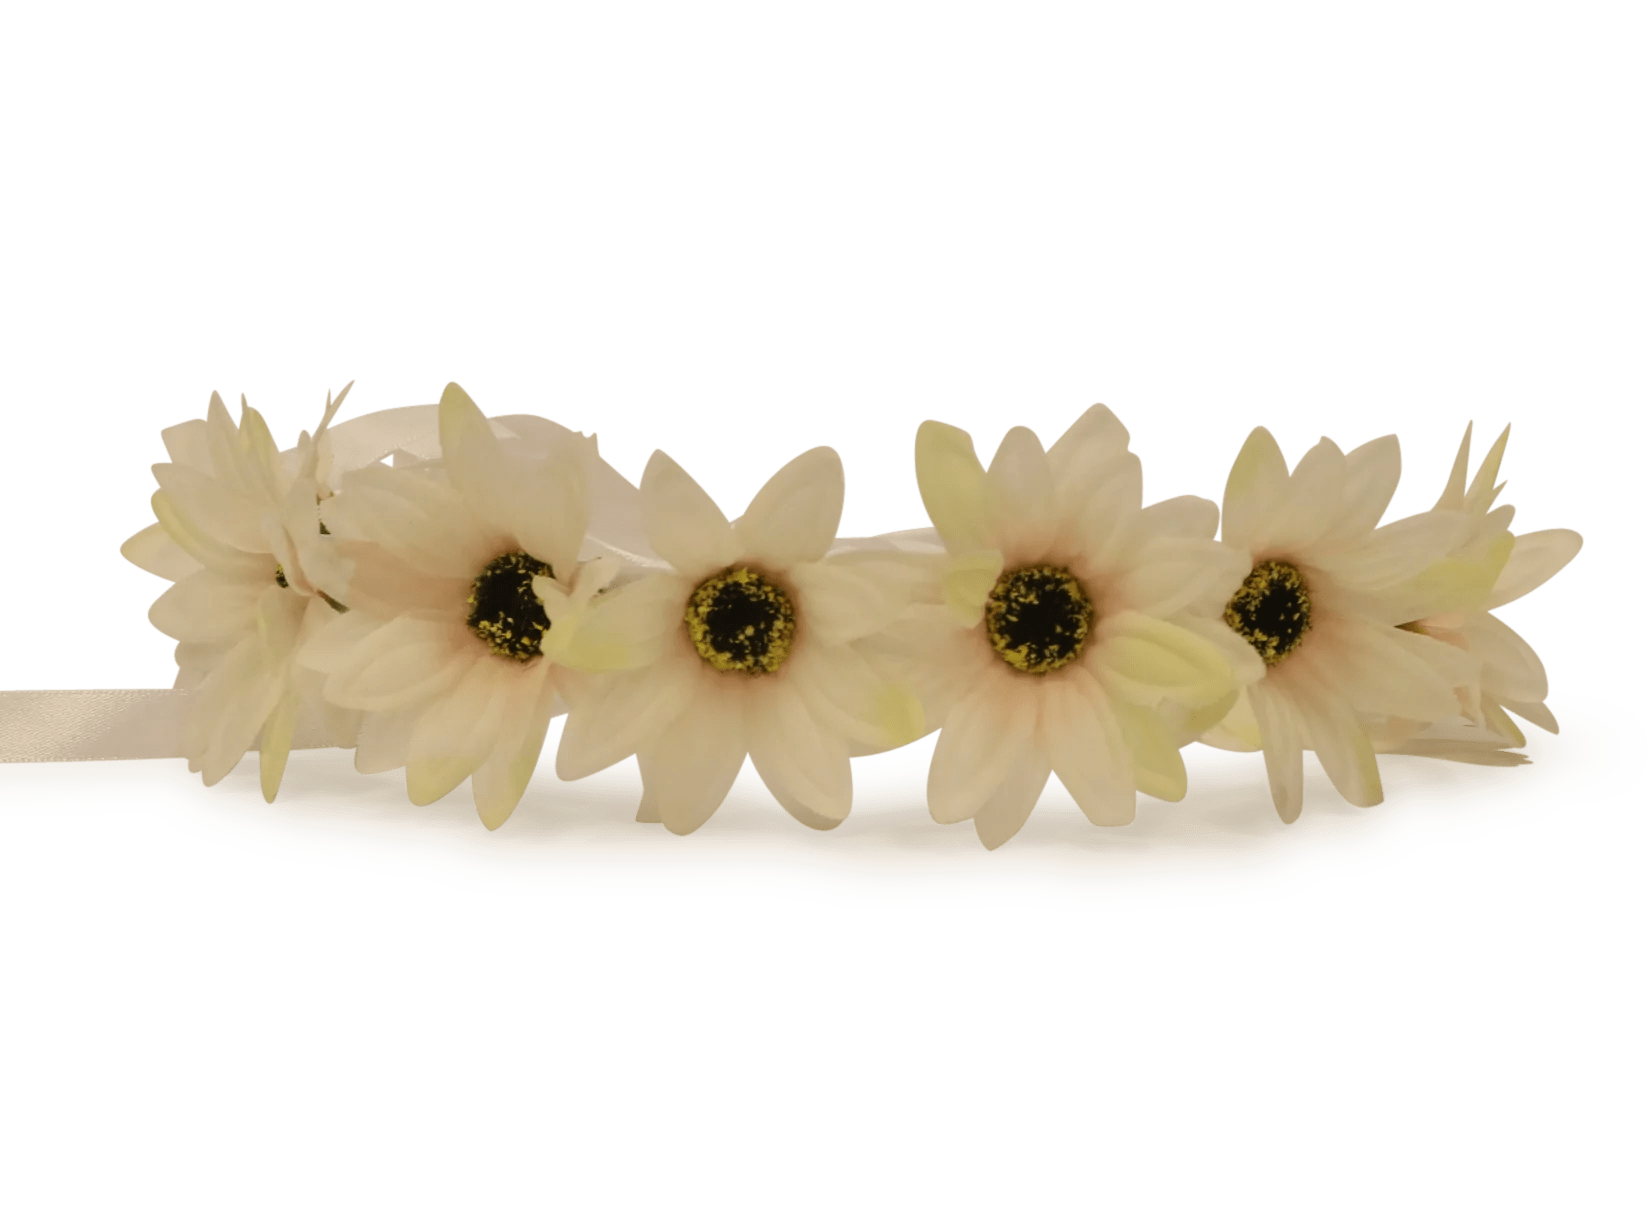 drawn yellow flower crown transparent